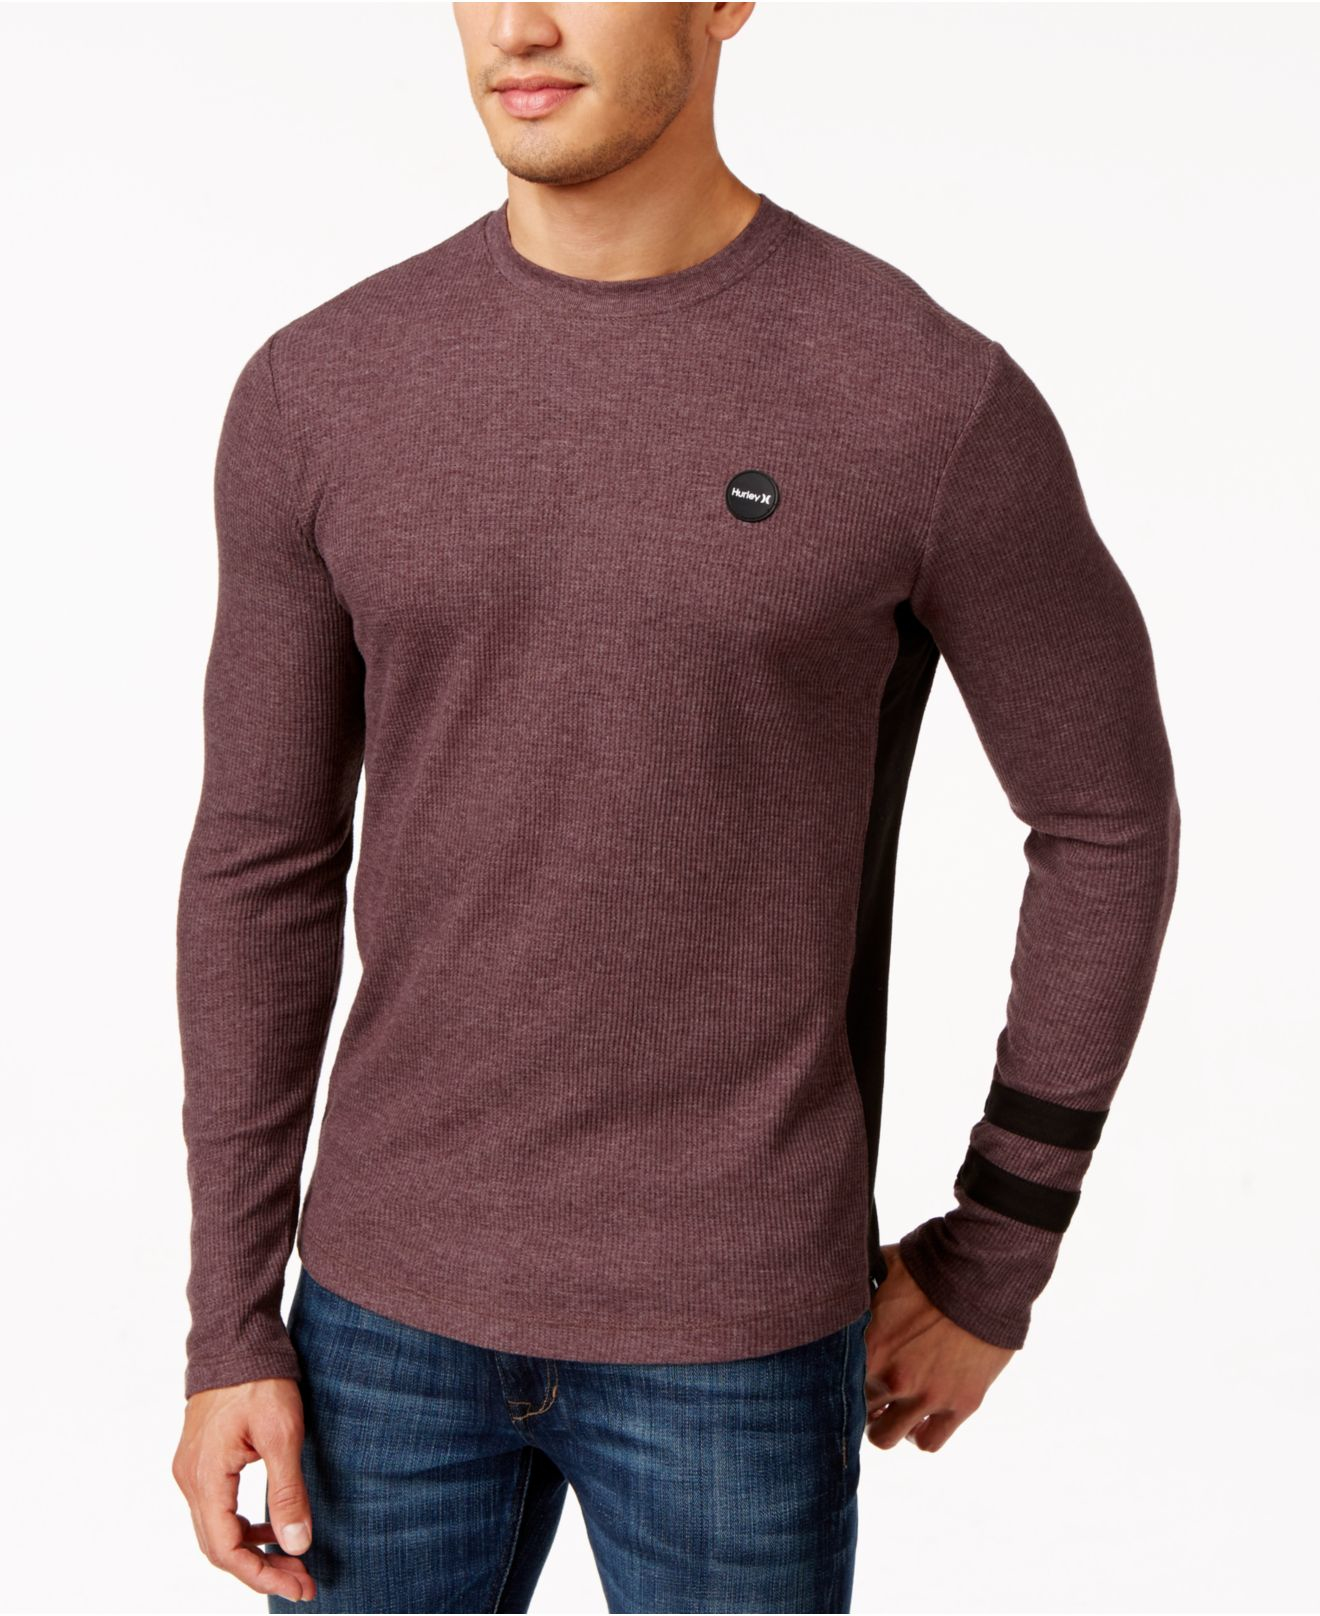 Hurley pano thermal long sleeve t shirt in brown for men Thermal t shirt long sleeve